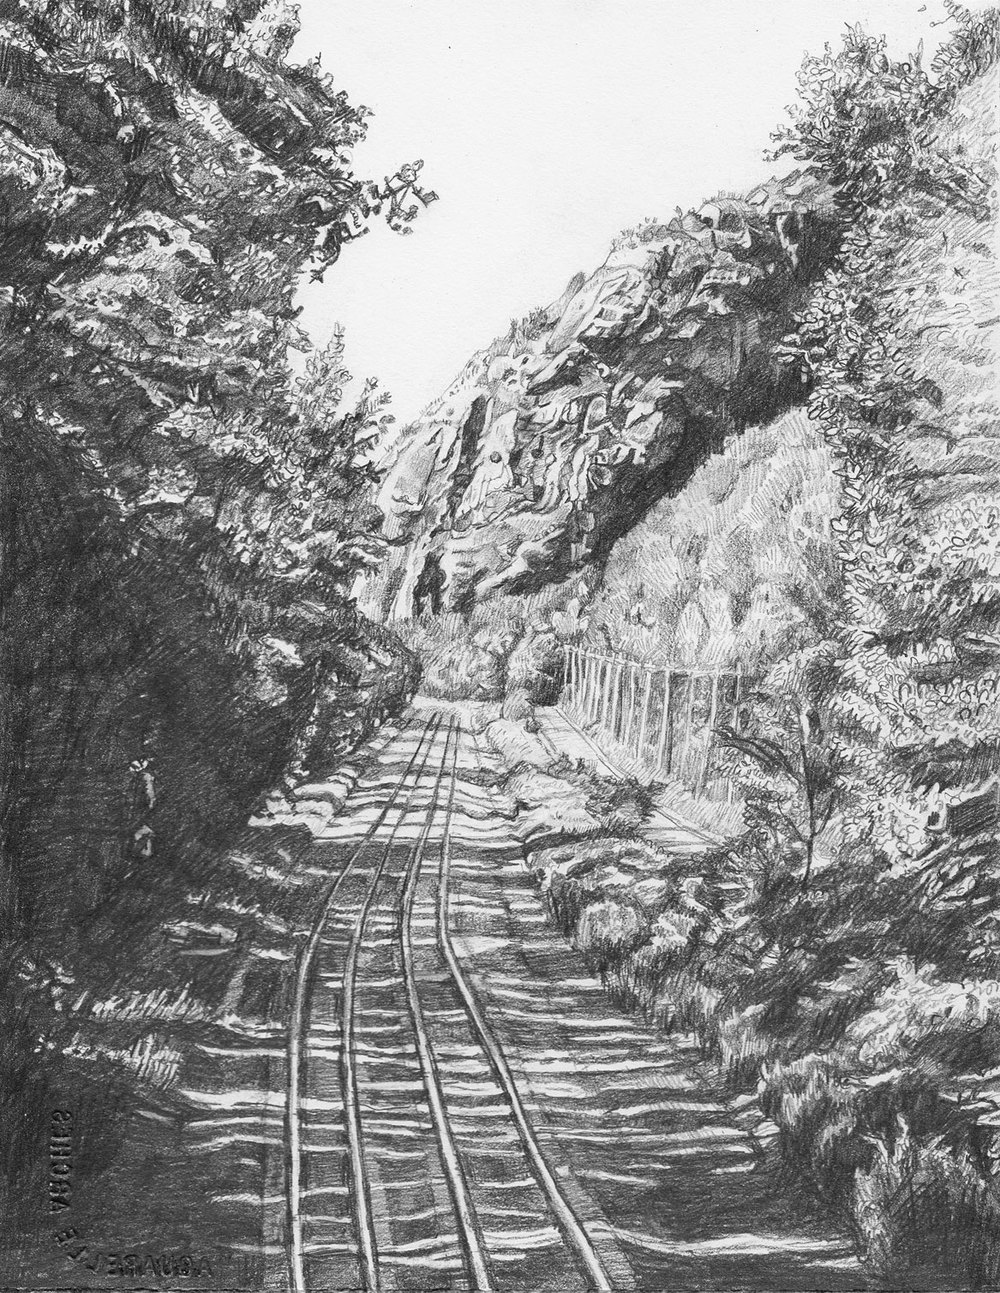 Ridge over Tracks